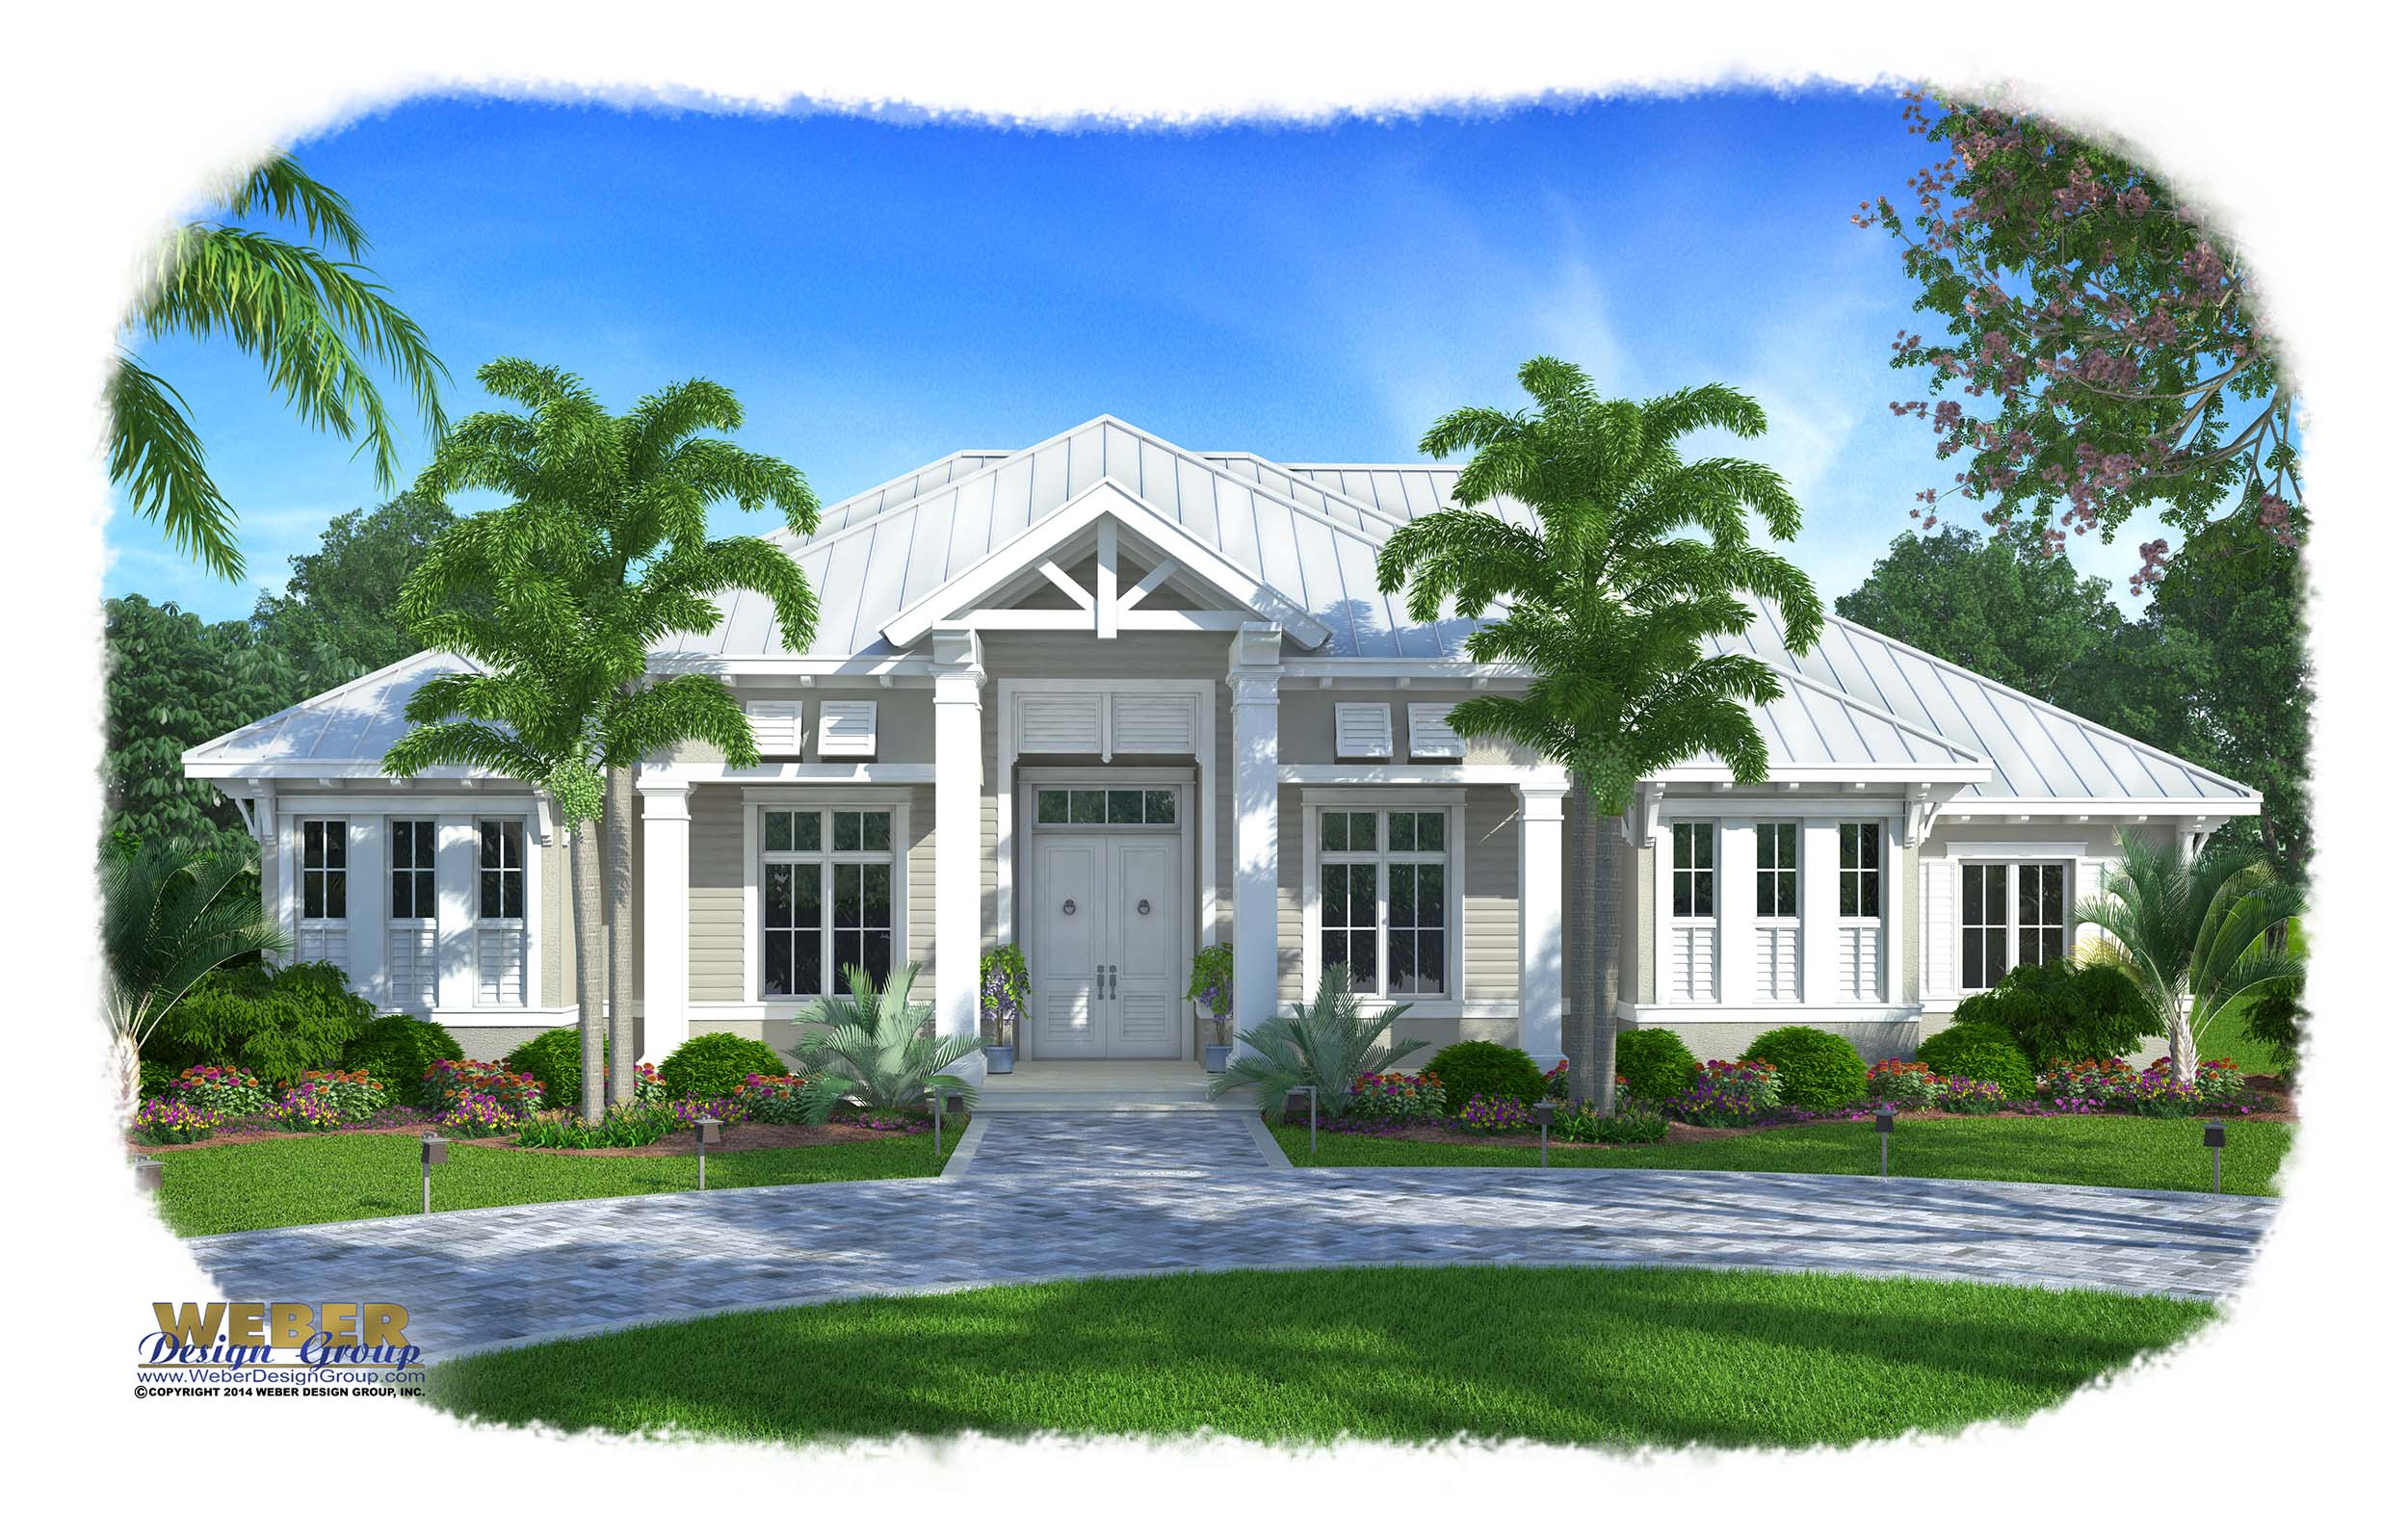 Olde Florida House Plan Barbados Weber Design Group